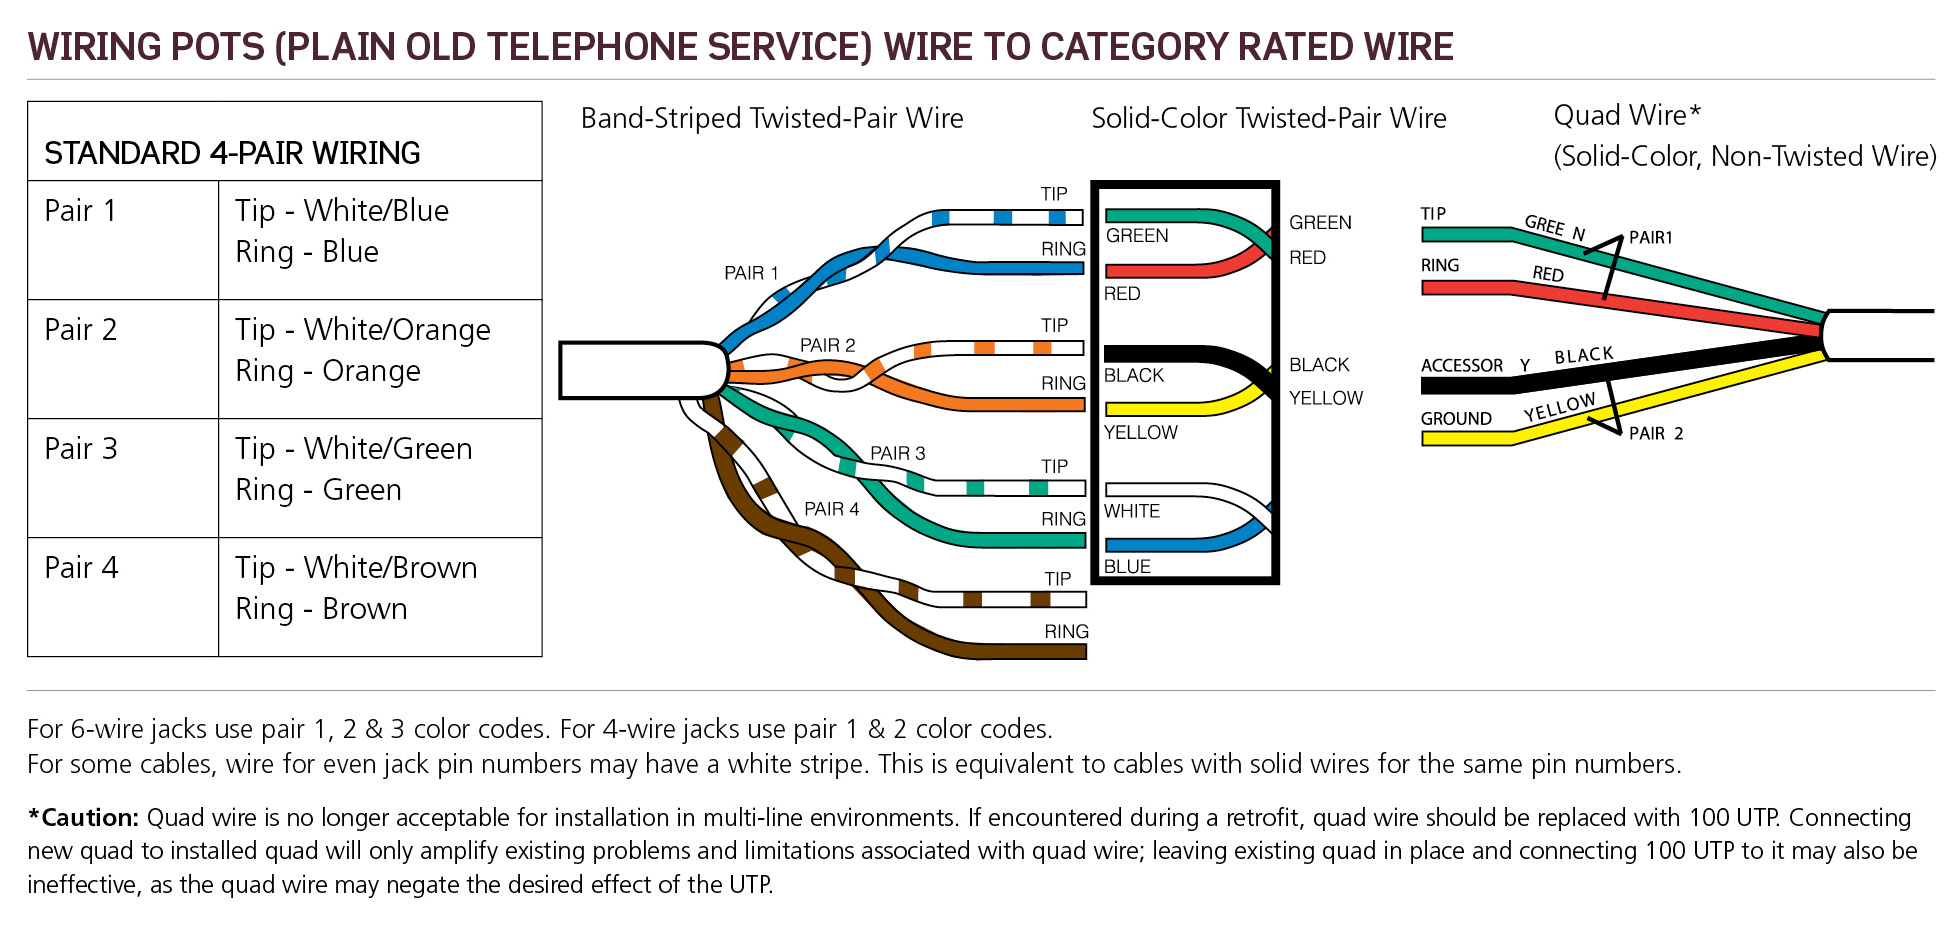 small resolution of pots plain old telephone service wiring leviton made easy blog are you staring at some wire